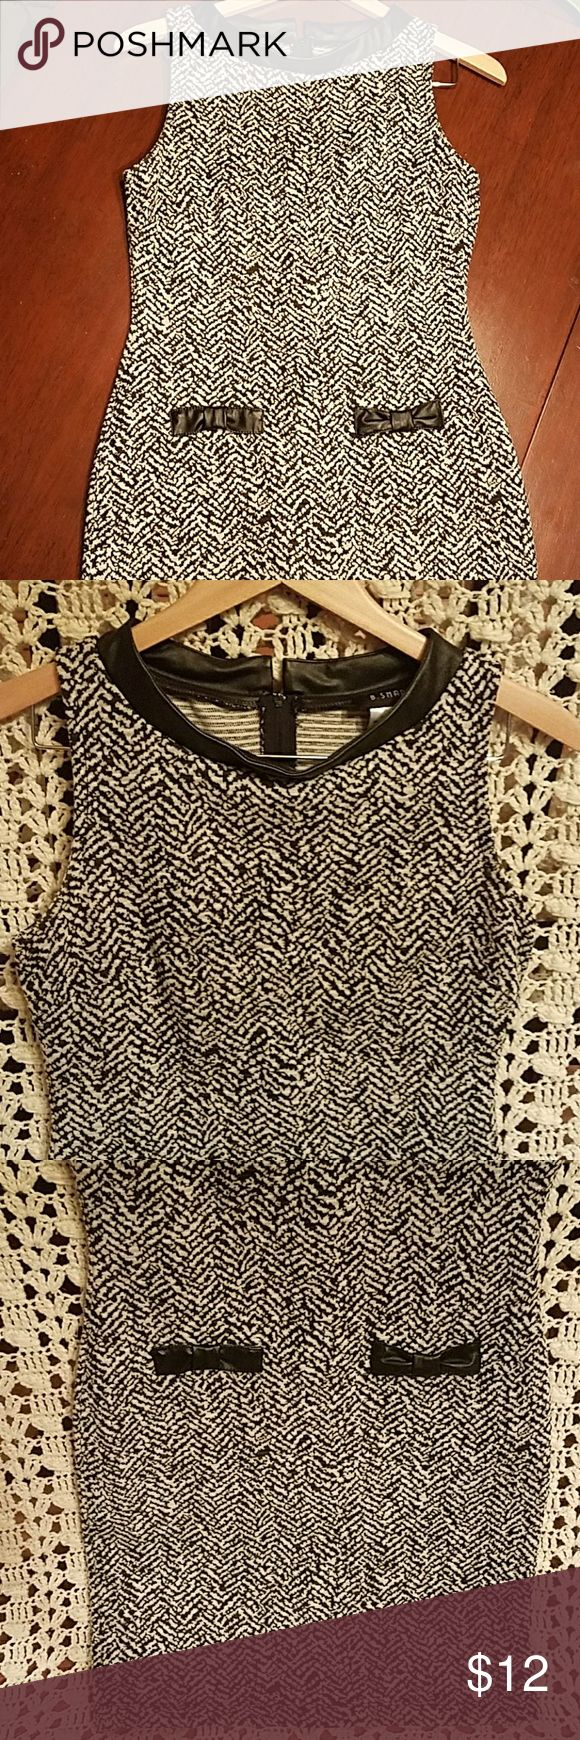 Black/Grey/Off-White Patterned Dress Faux leather trims neckline. 2 bows in the front for decoration. 35 inches total length flat. 16 inches bust, 18 inches hips laying flate. Zips in the back. Size 6. Used, but great, condition. B Smart Dresses Midi